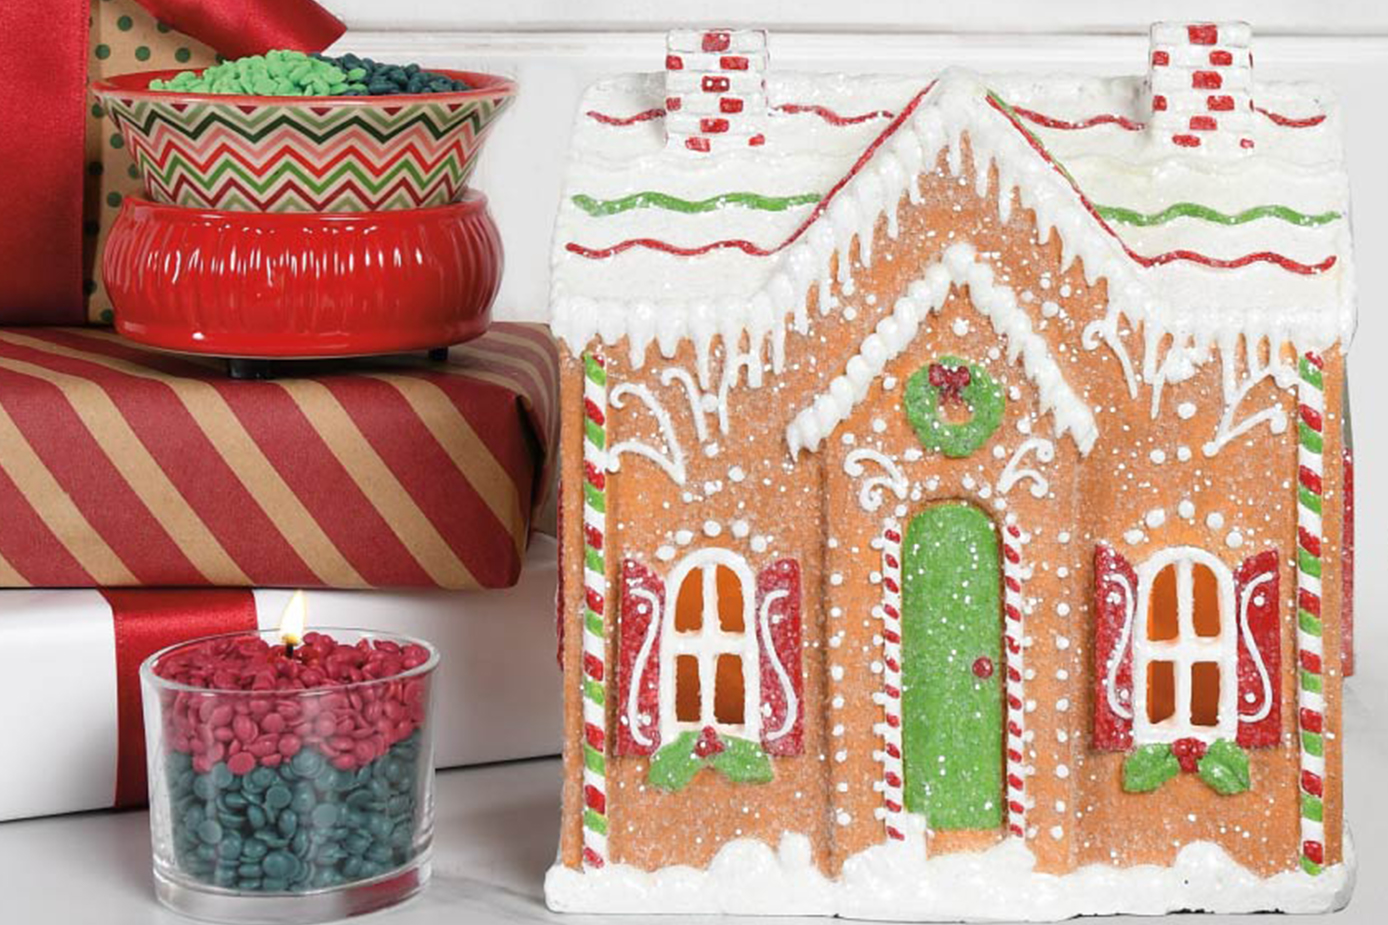 Pink Zebra Gingerbread House